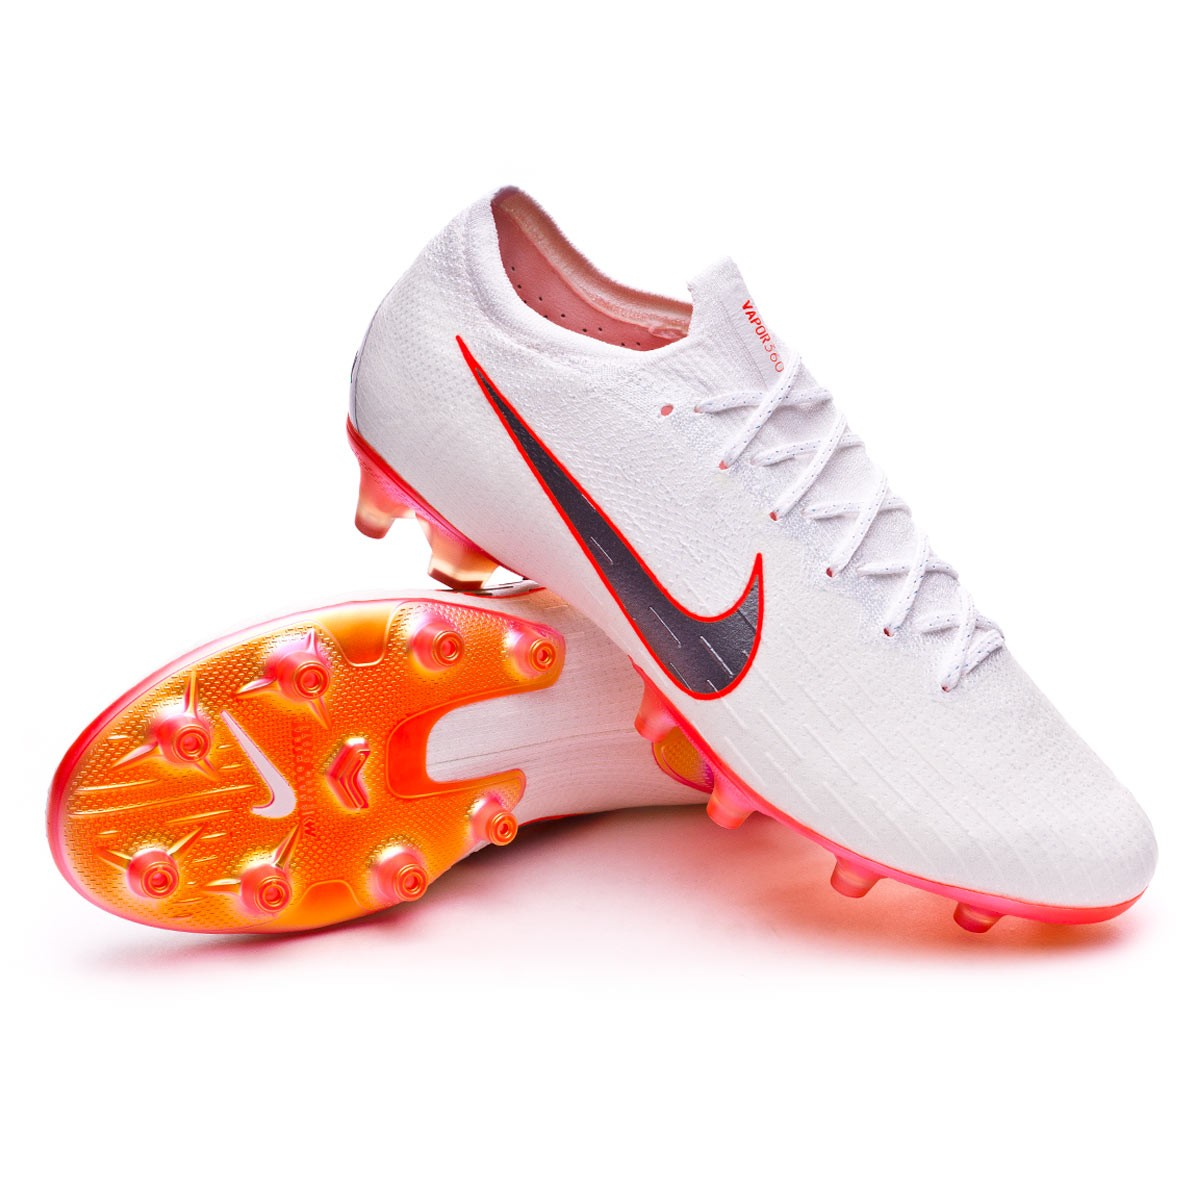 Boot Nike Mercurial Vapor XII Elite AG-Pro White-Metallic co